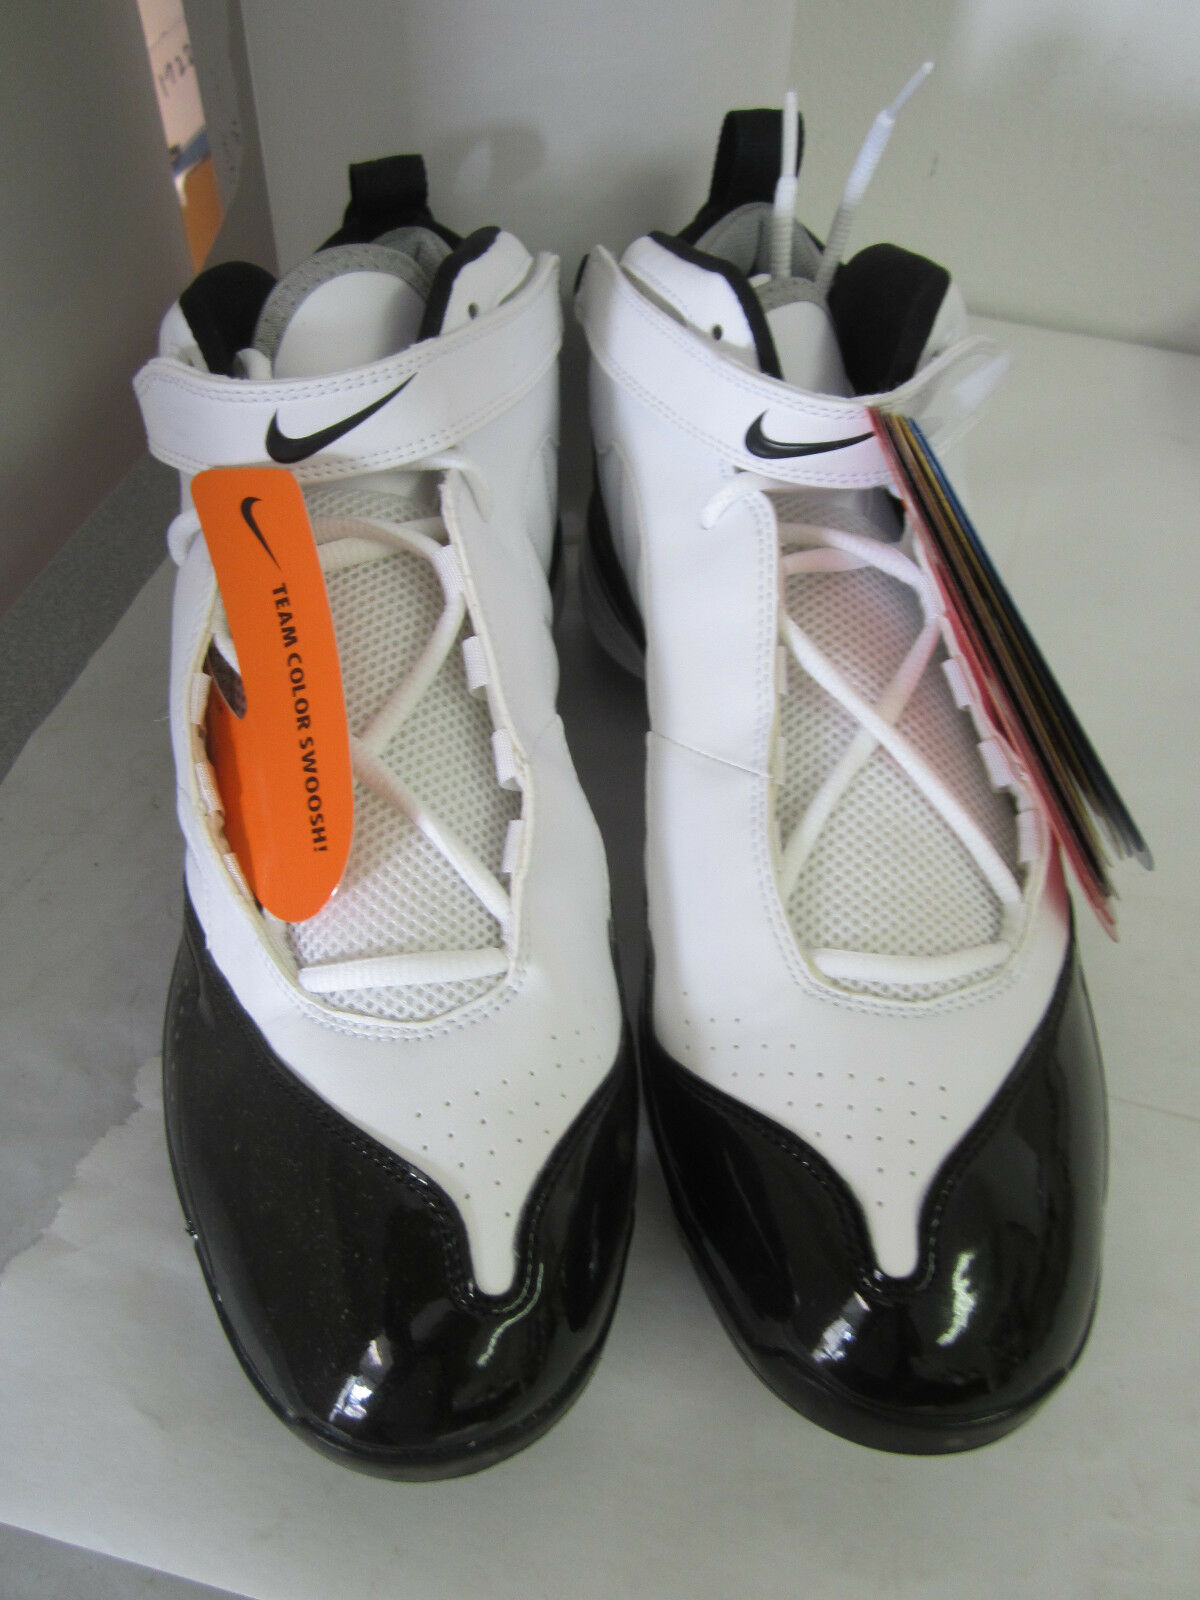 New Mens's Nike Air LT-D Football Cleat, White/Black - No Tool